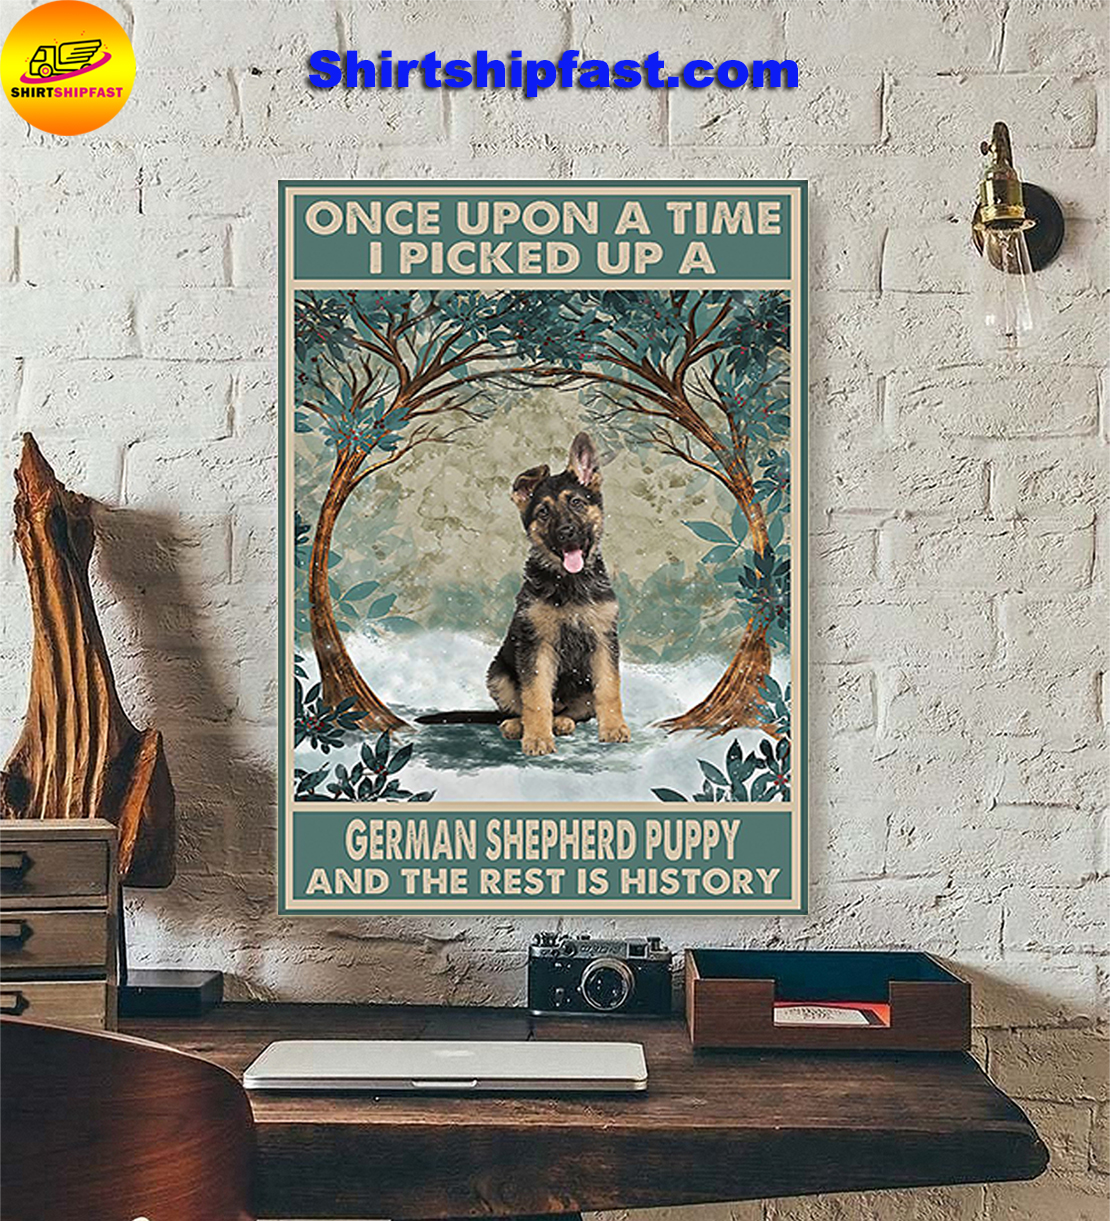 Once upon a time I pick up a German Shepherd puppy and the rest is history poster - Picture 2